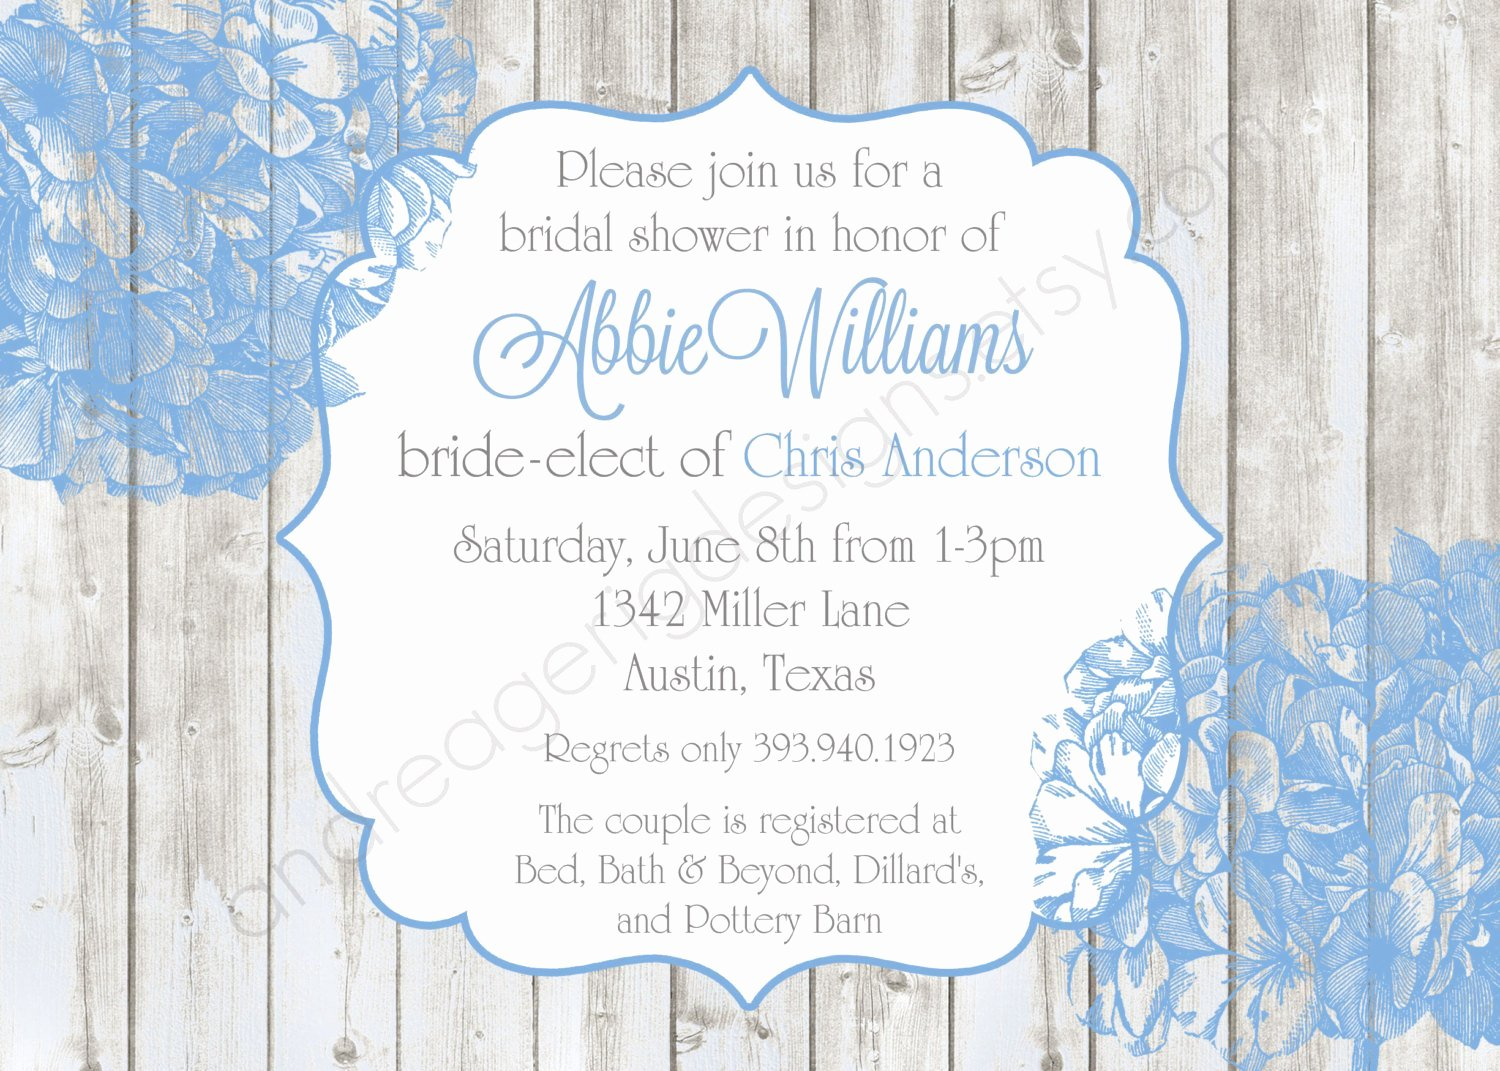 Bridal Shower Invitations Template New Bridal Shower Invitations Microsoft Word Bridal Shower